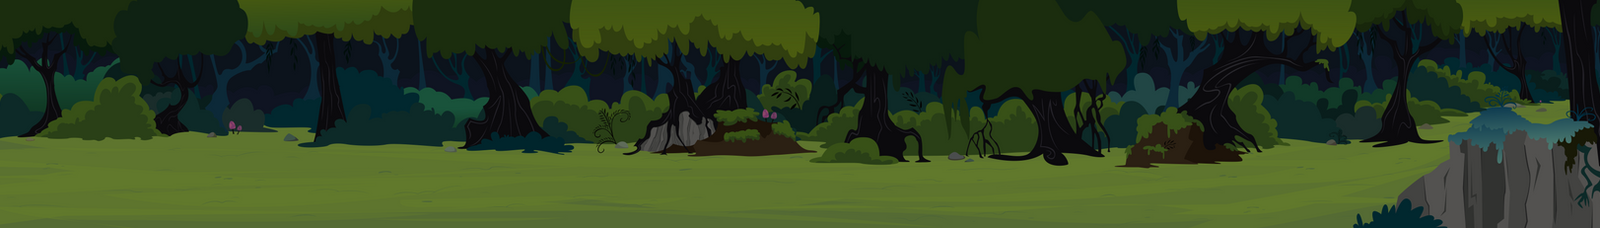 Everfree Forest Pan by BonesWolbach